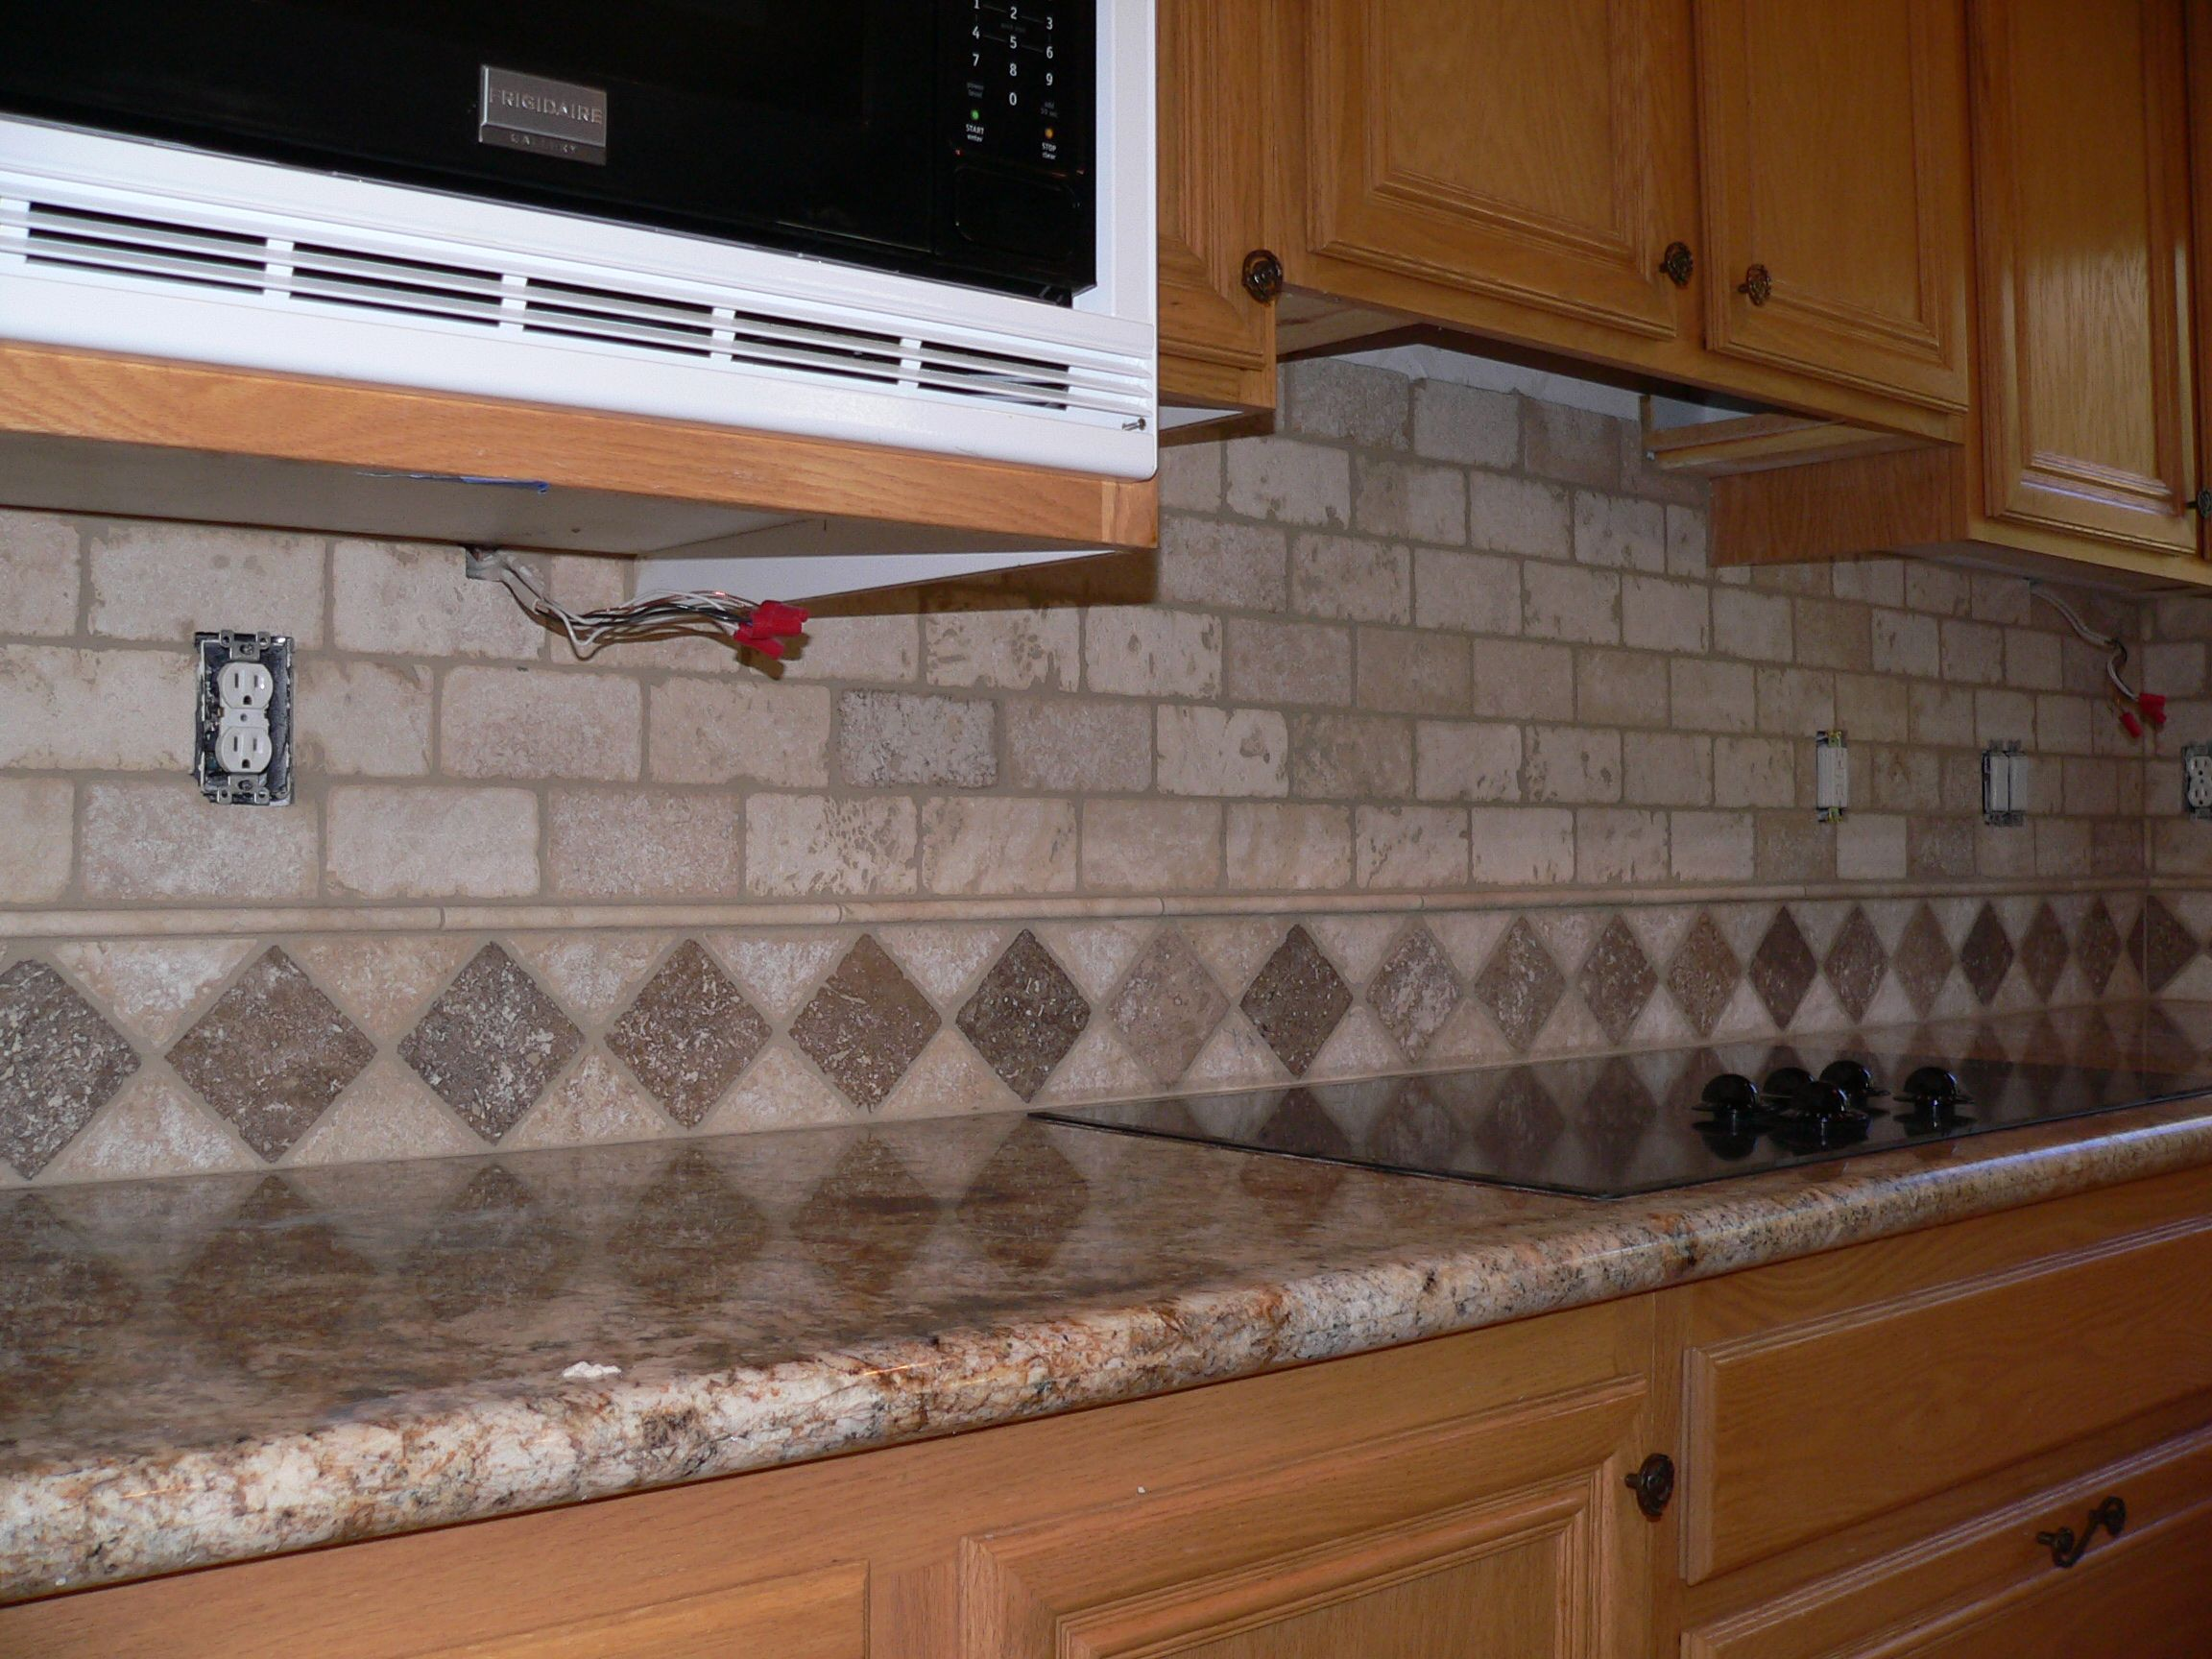 Travertine tile backsplash kitchen backsplash make over Backsplash or no backsplash